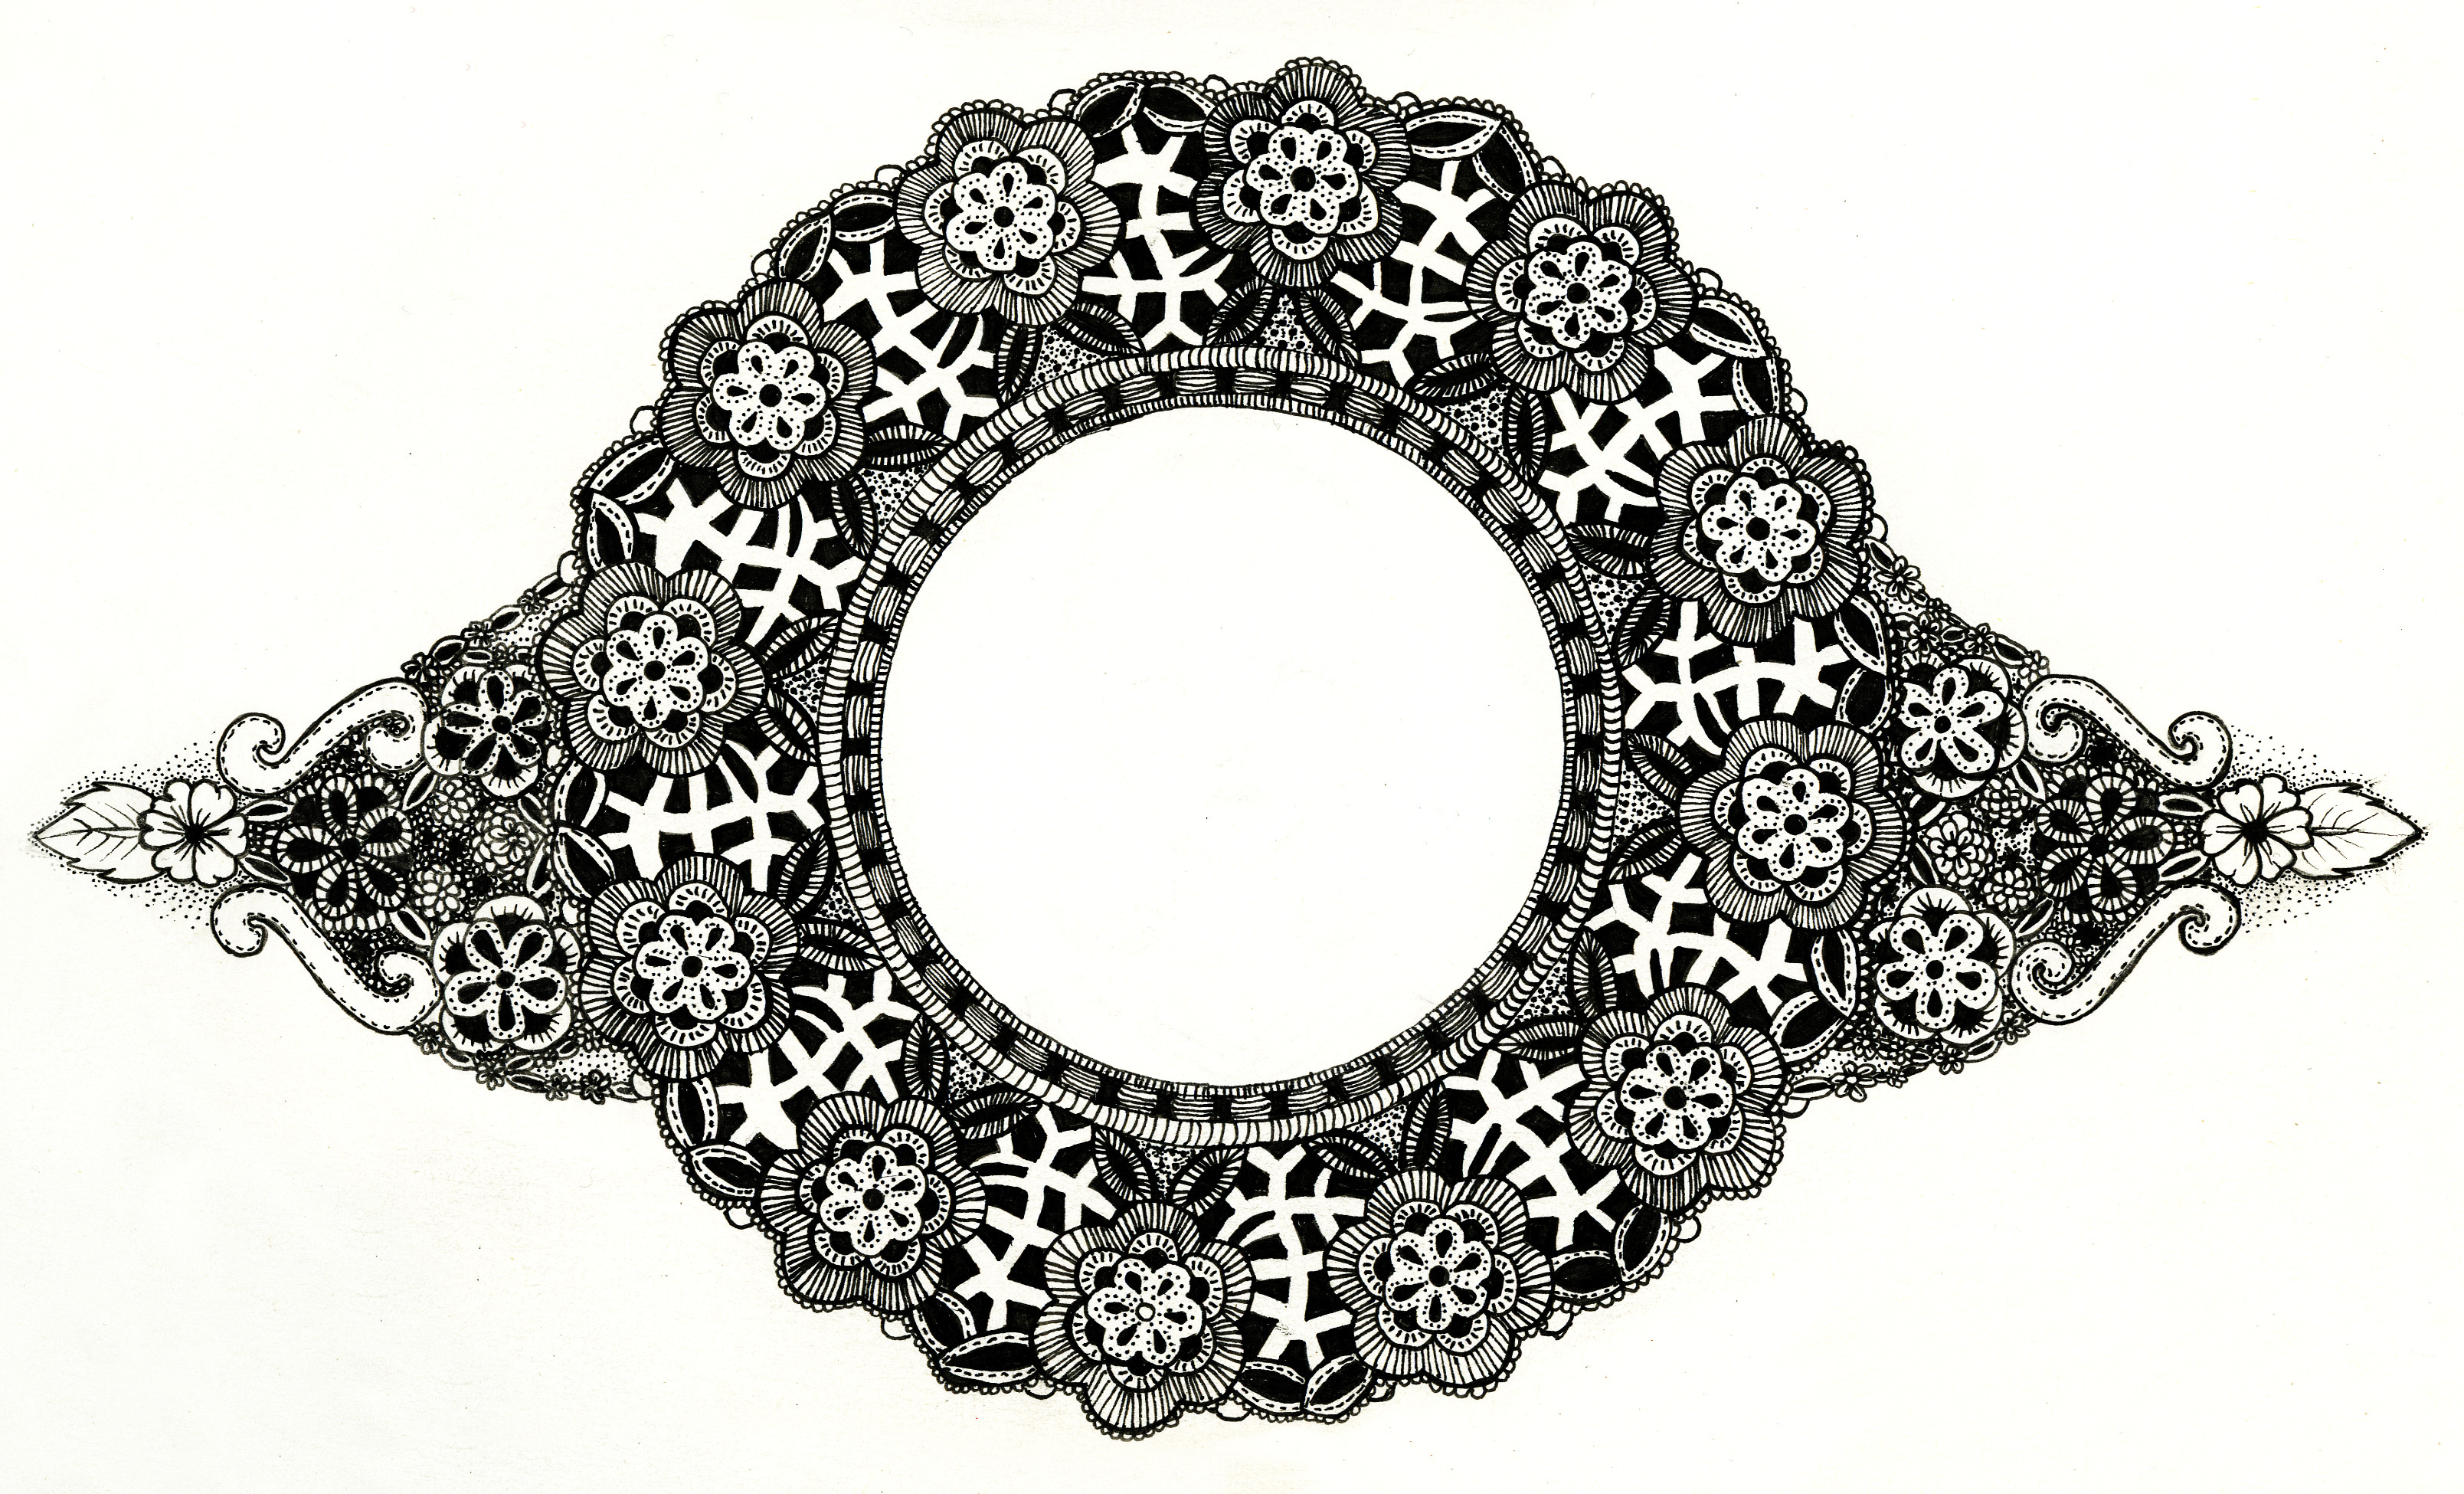 lace border drawing - photo #32